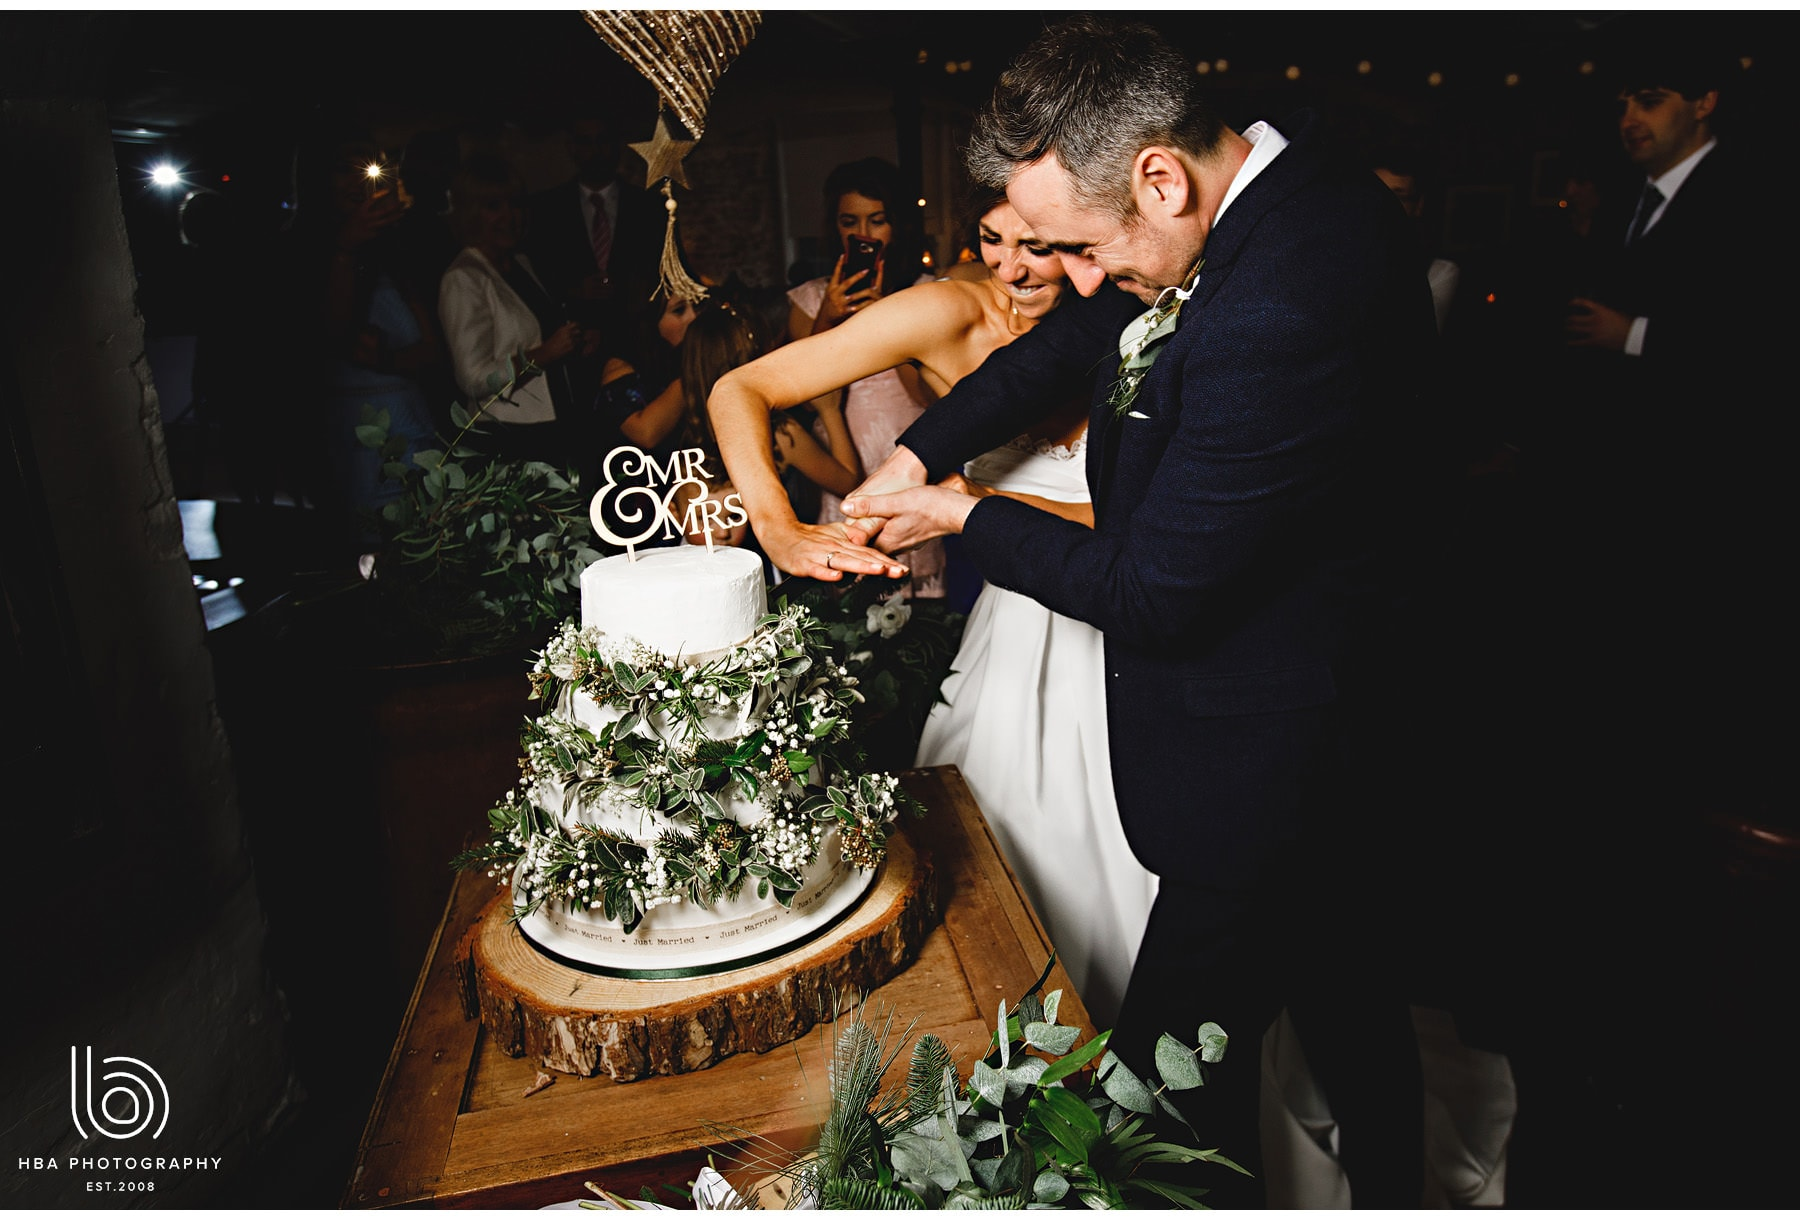 the bride and groom cutting their cake